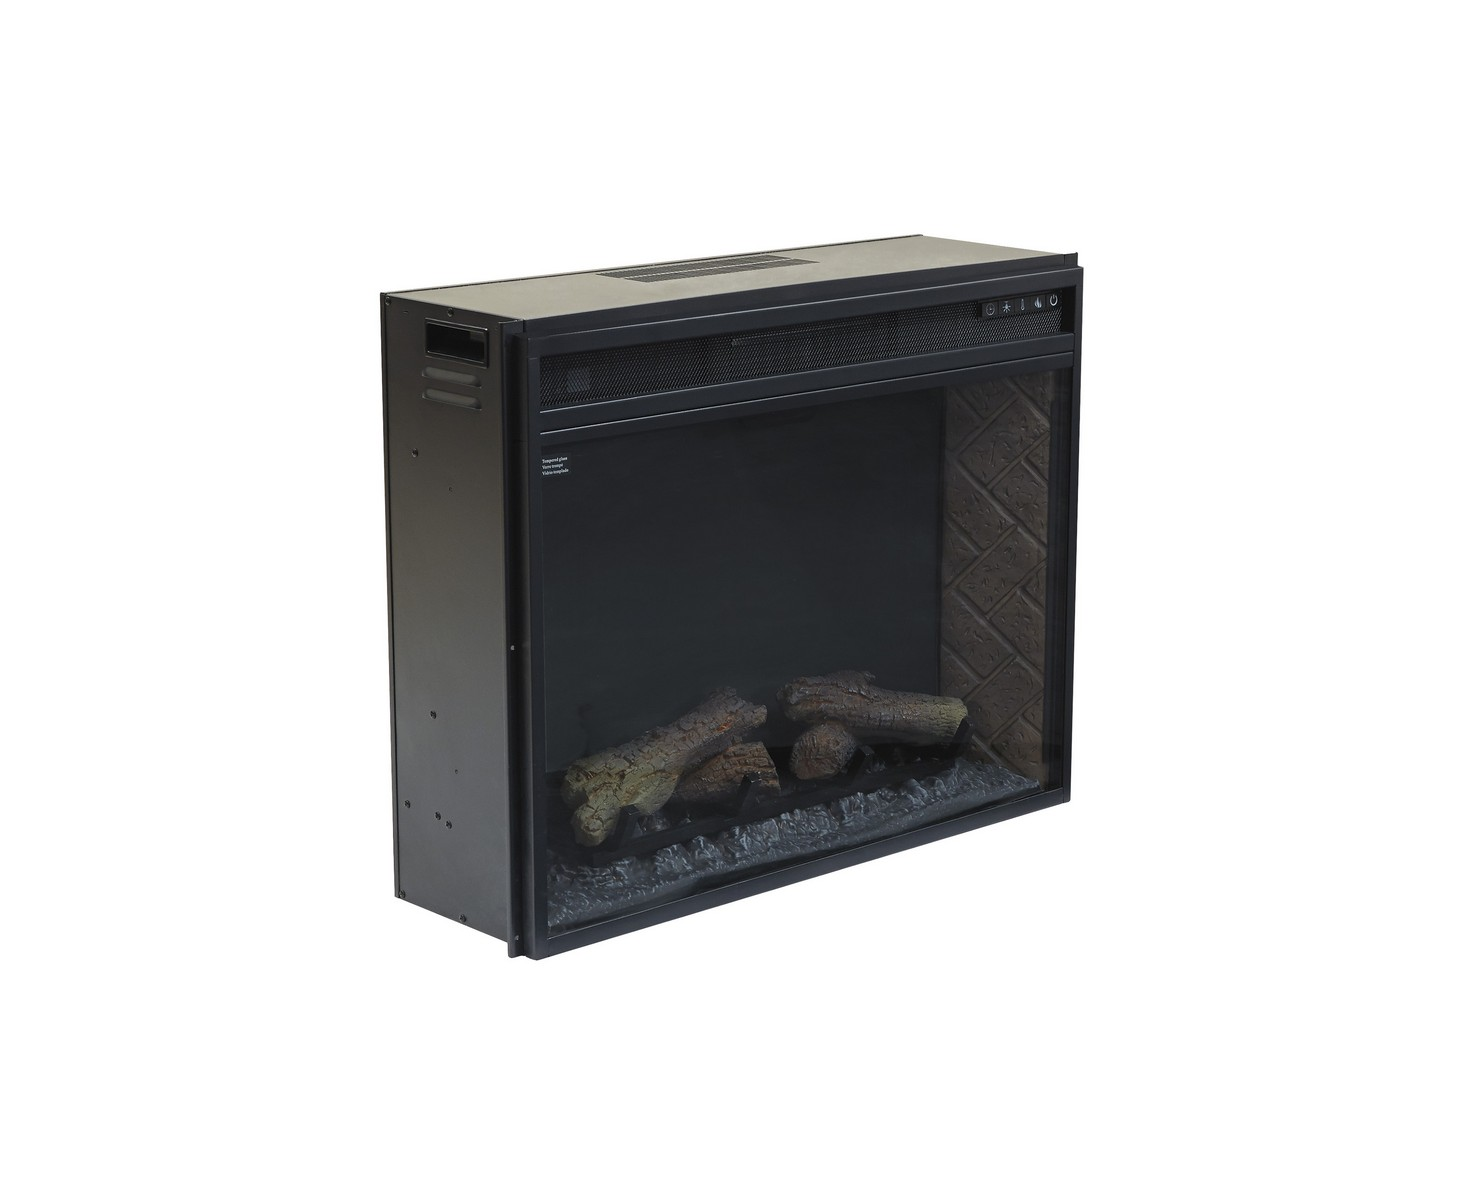 Ashley W100 Series Fireplace Insert Infrared